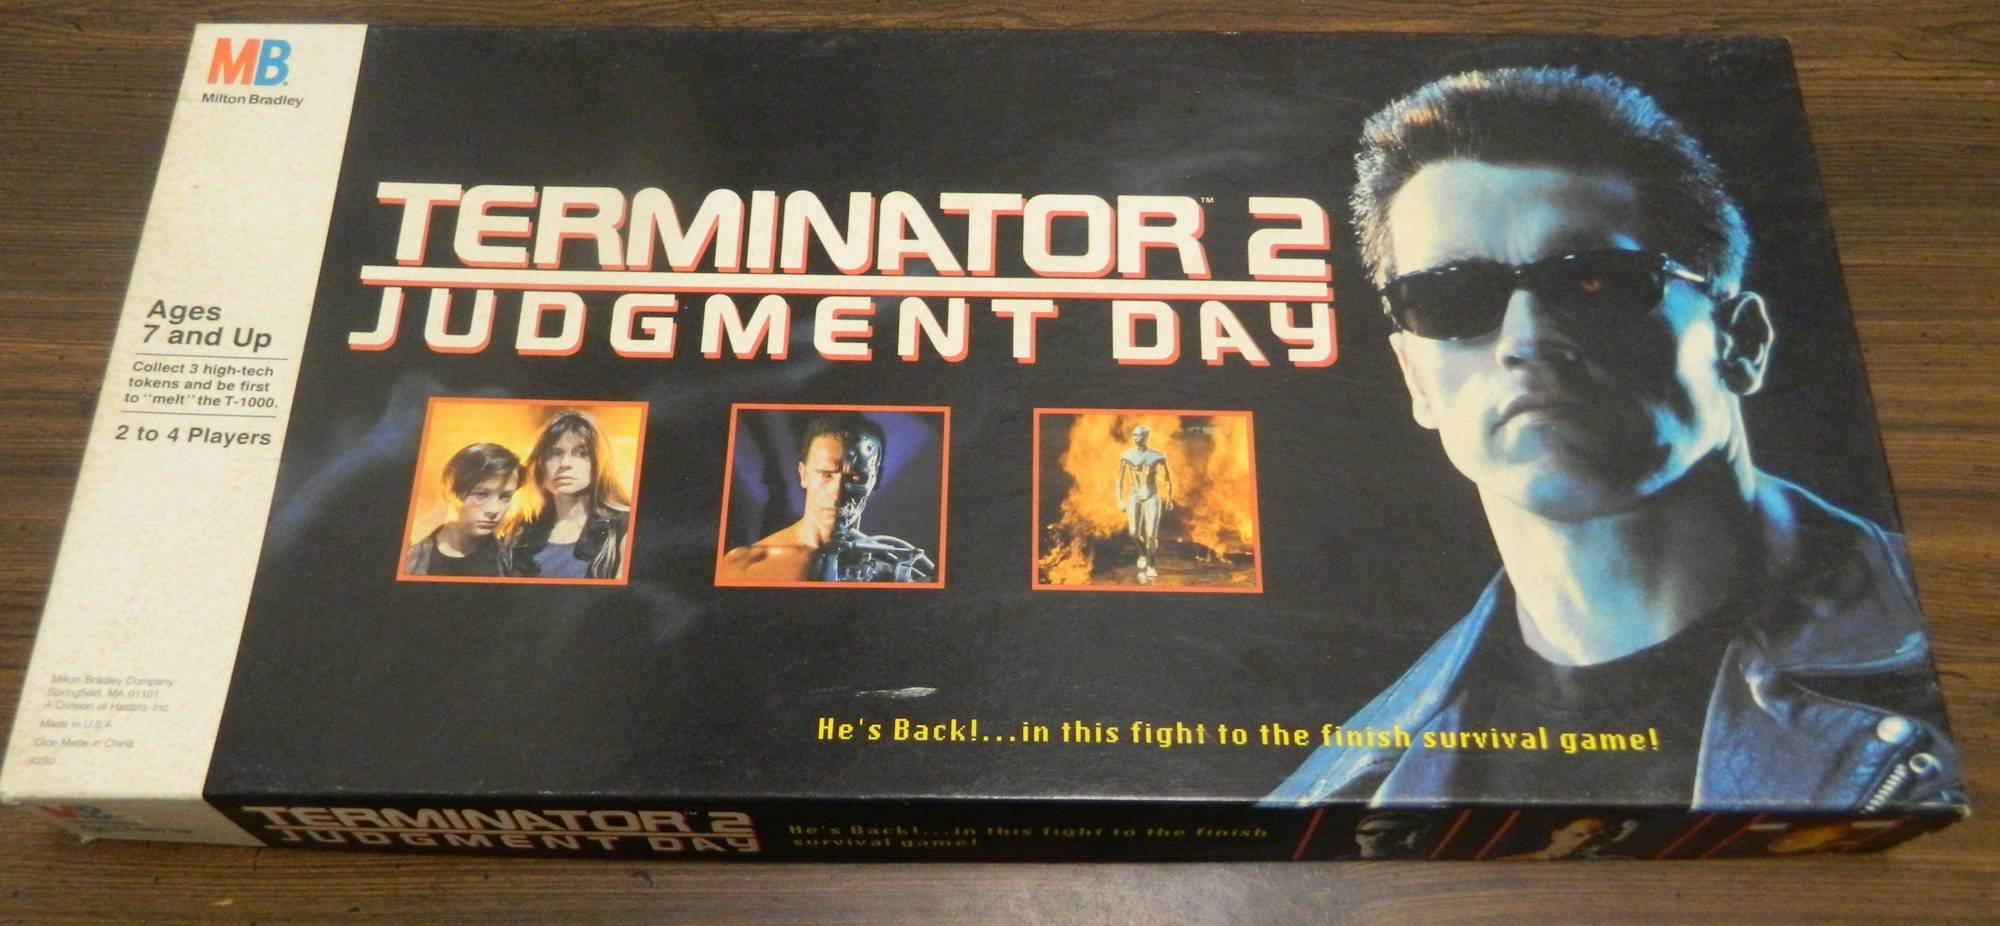 Terminator 2 Judgment Day Box